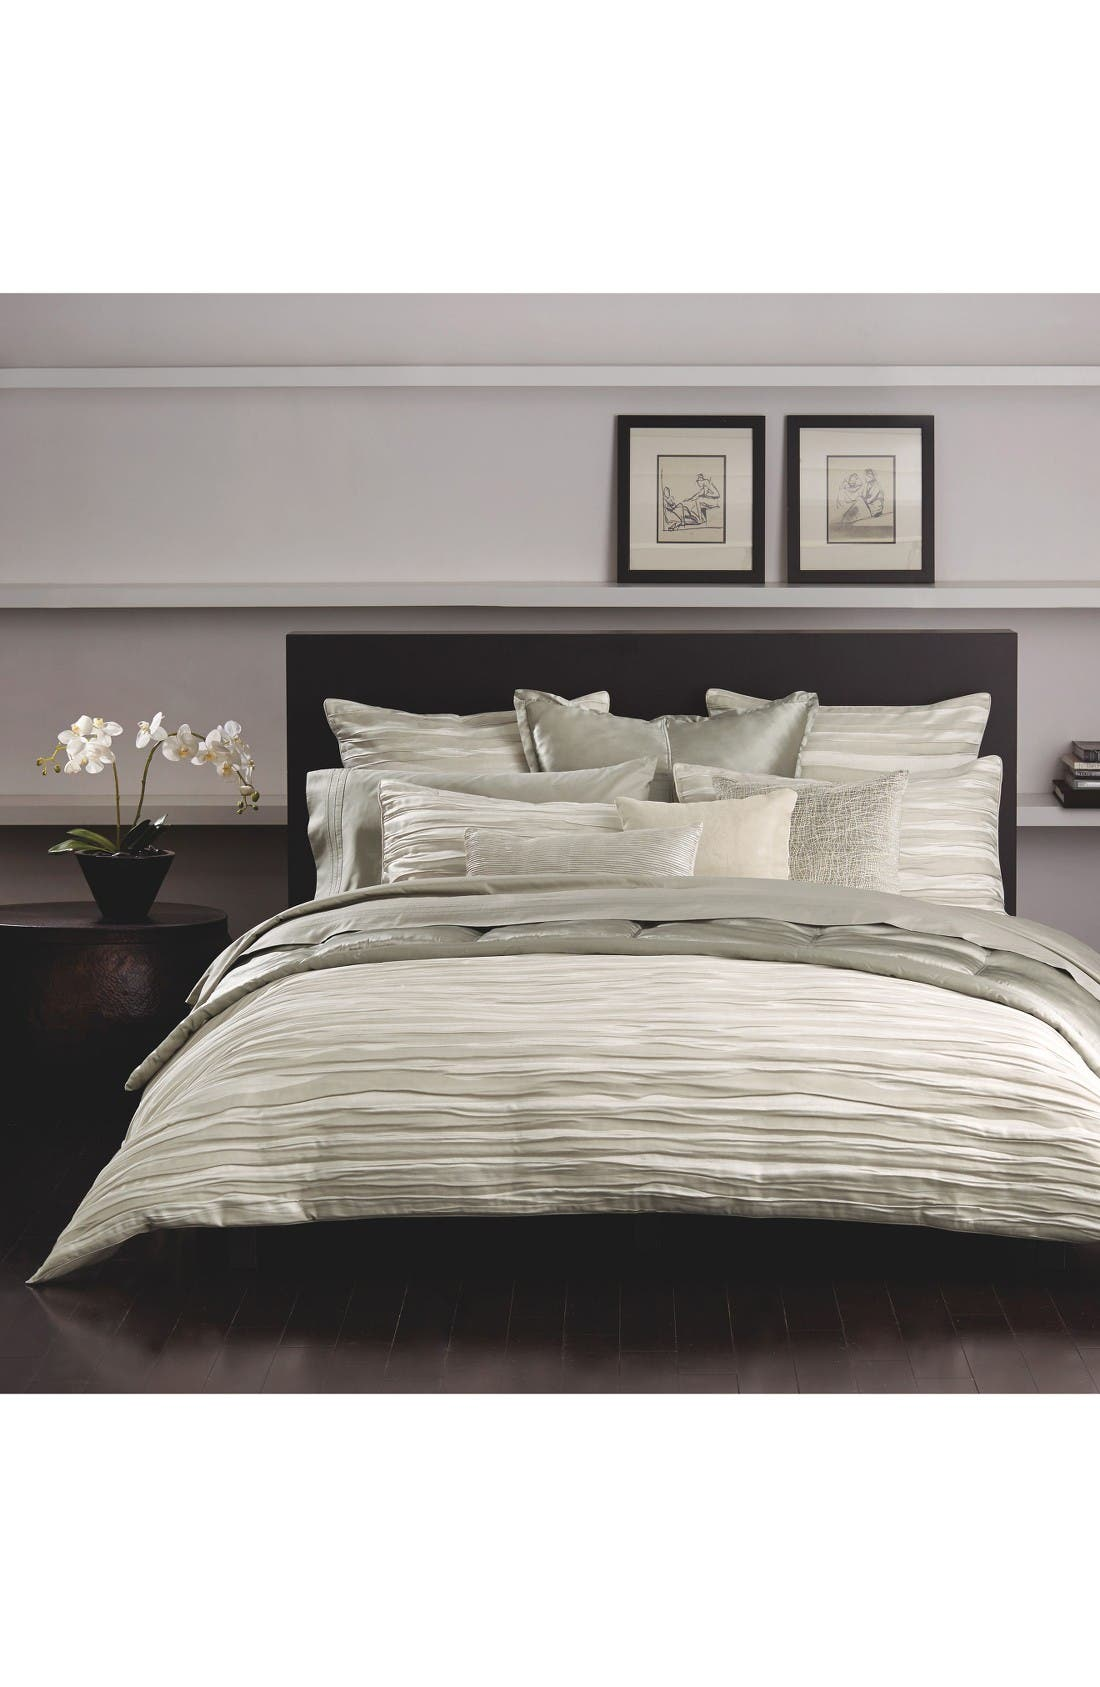 Tidal Duvet Cover by Donna Karan New York